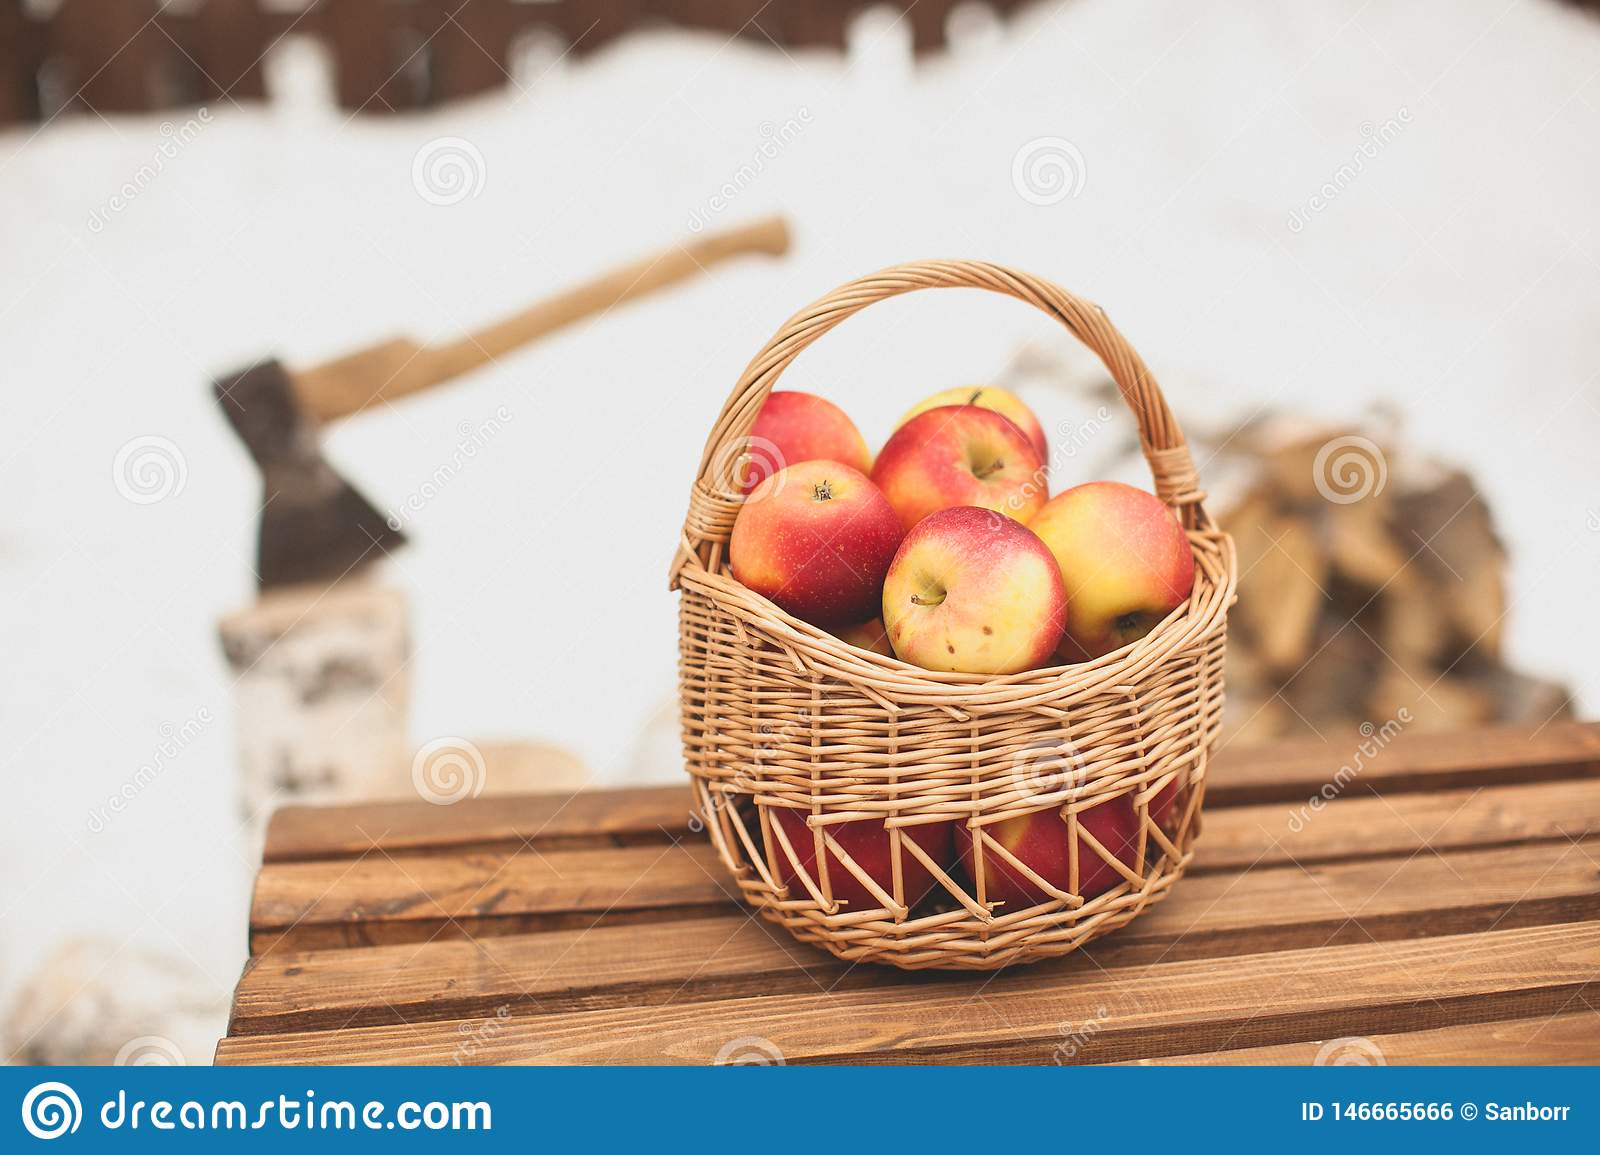 Red garden apples in a wicker picnic basket, on a wooden bench on a winter day, close-up. In the background, fuel wood and an axe